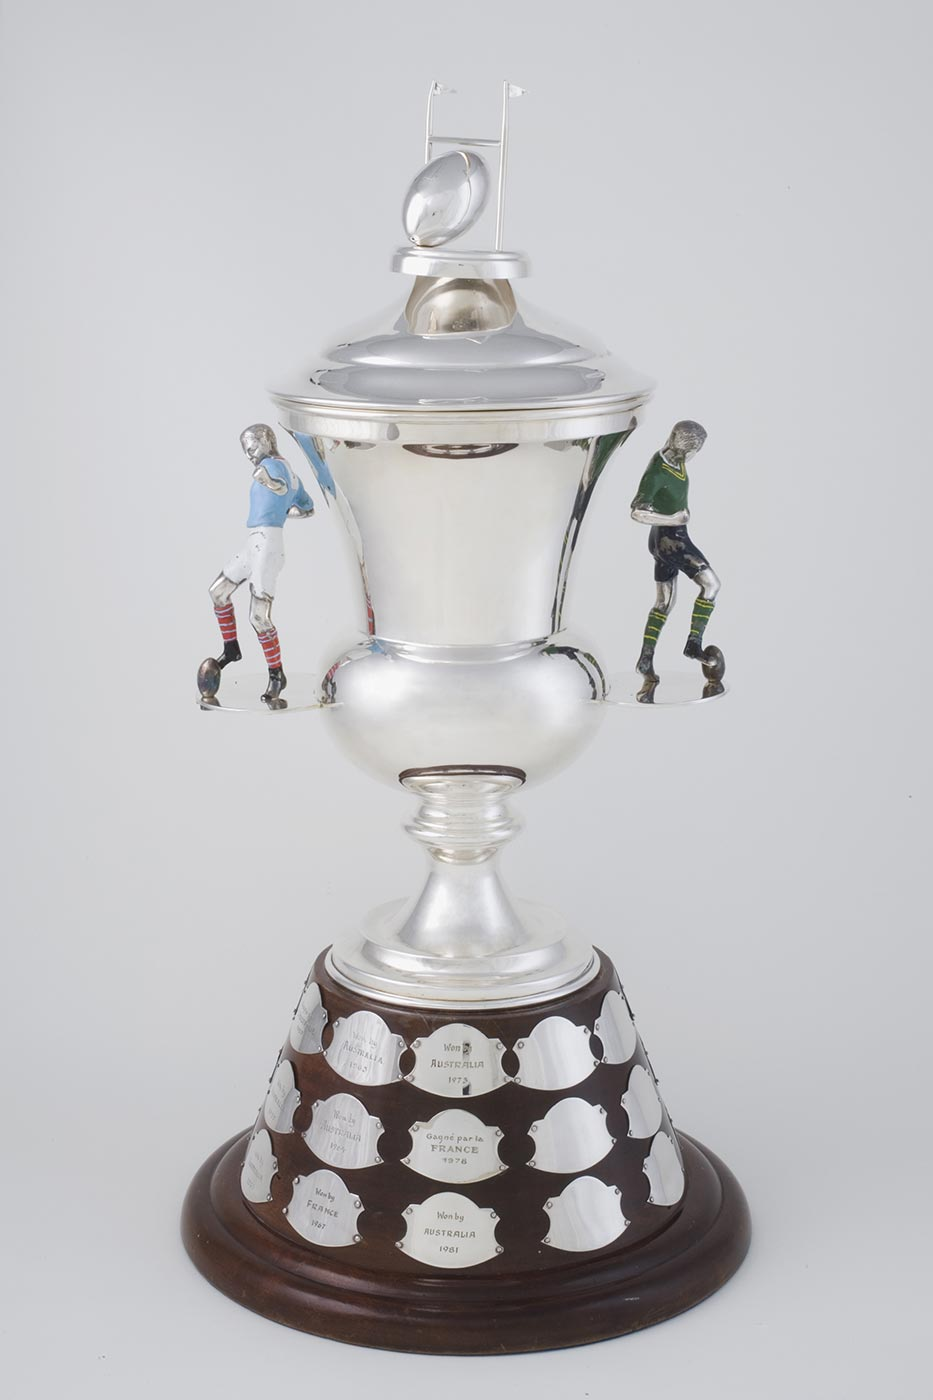 Silver International Rugby League trophy after conservation treatment - click to view larger image